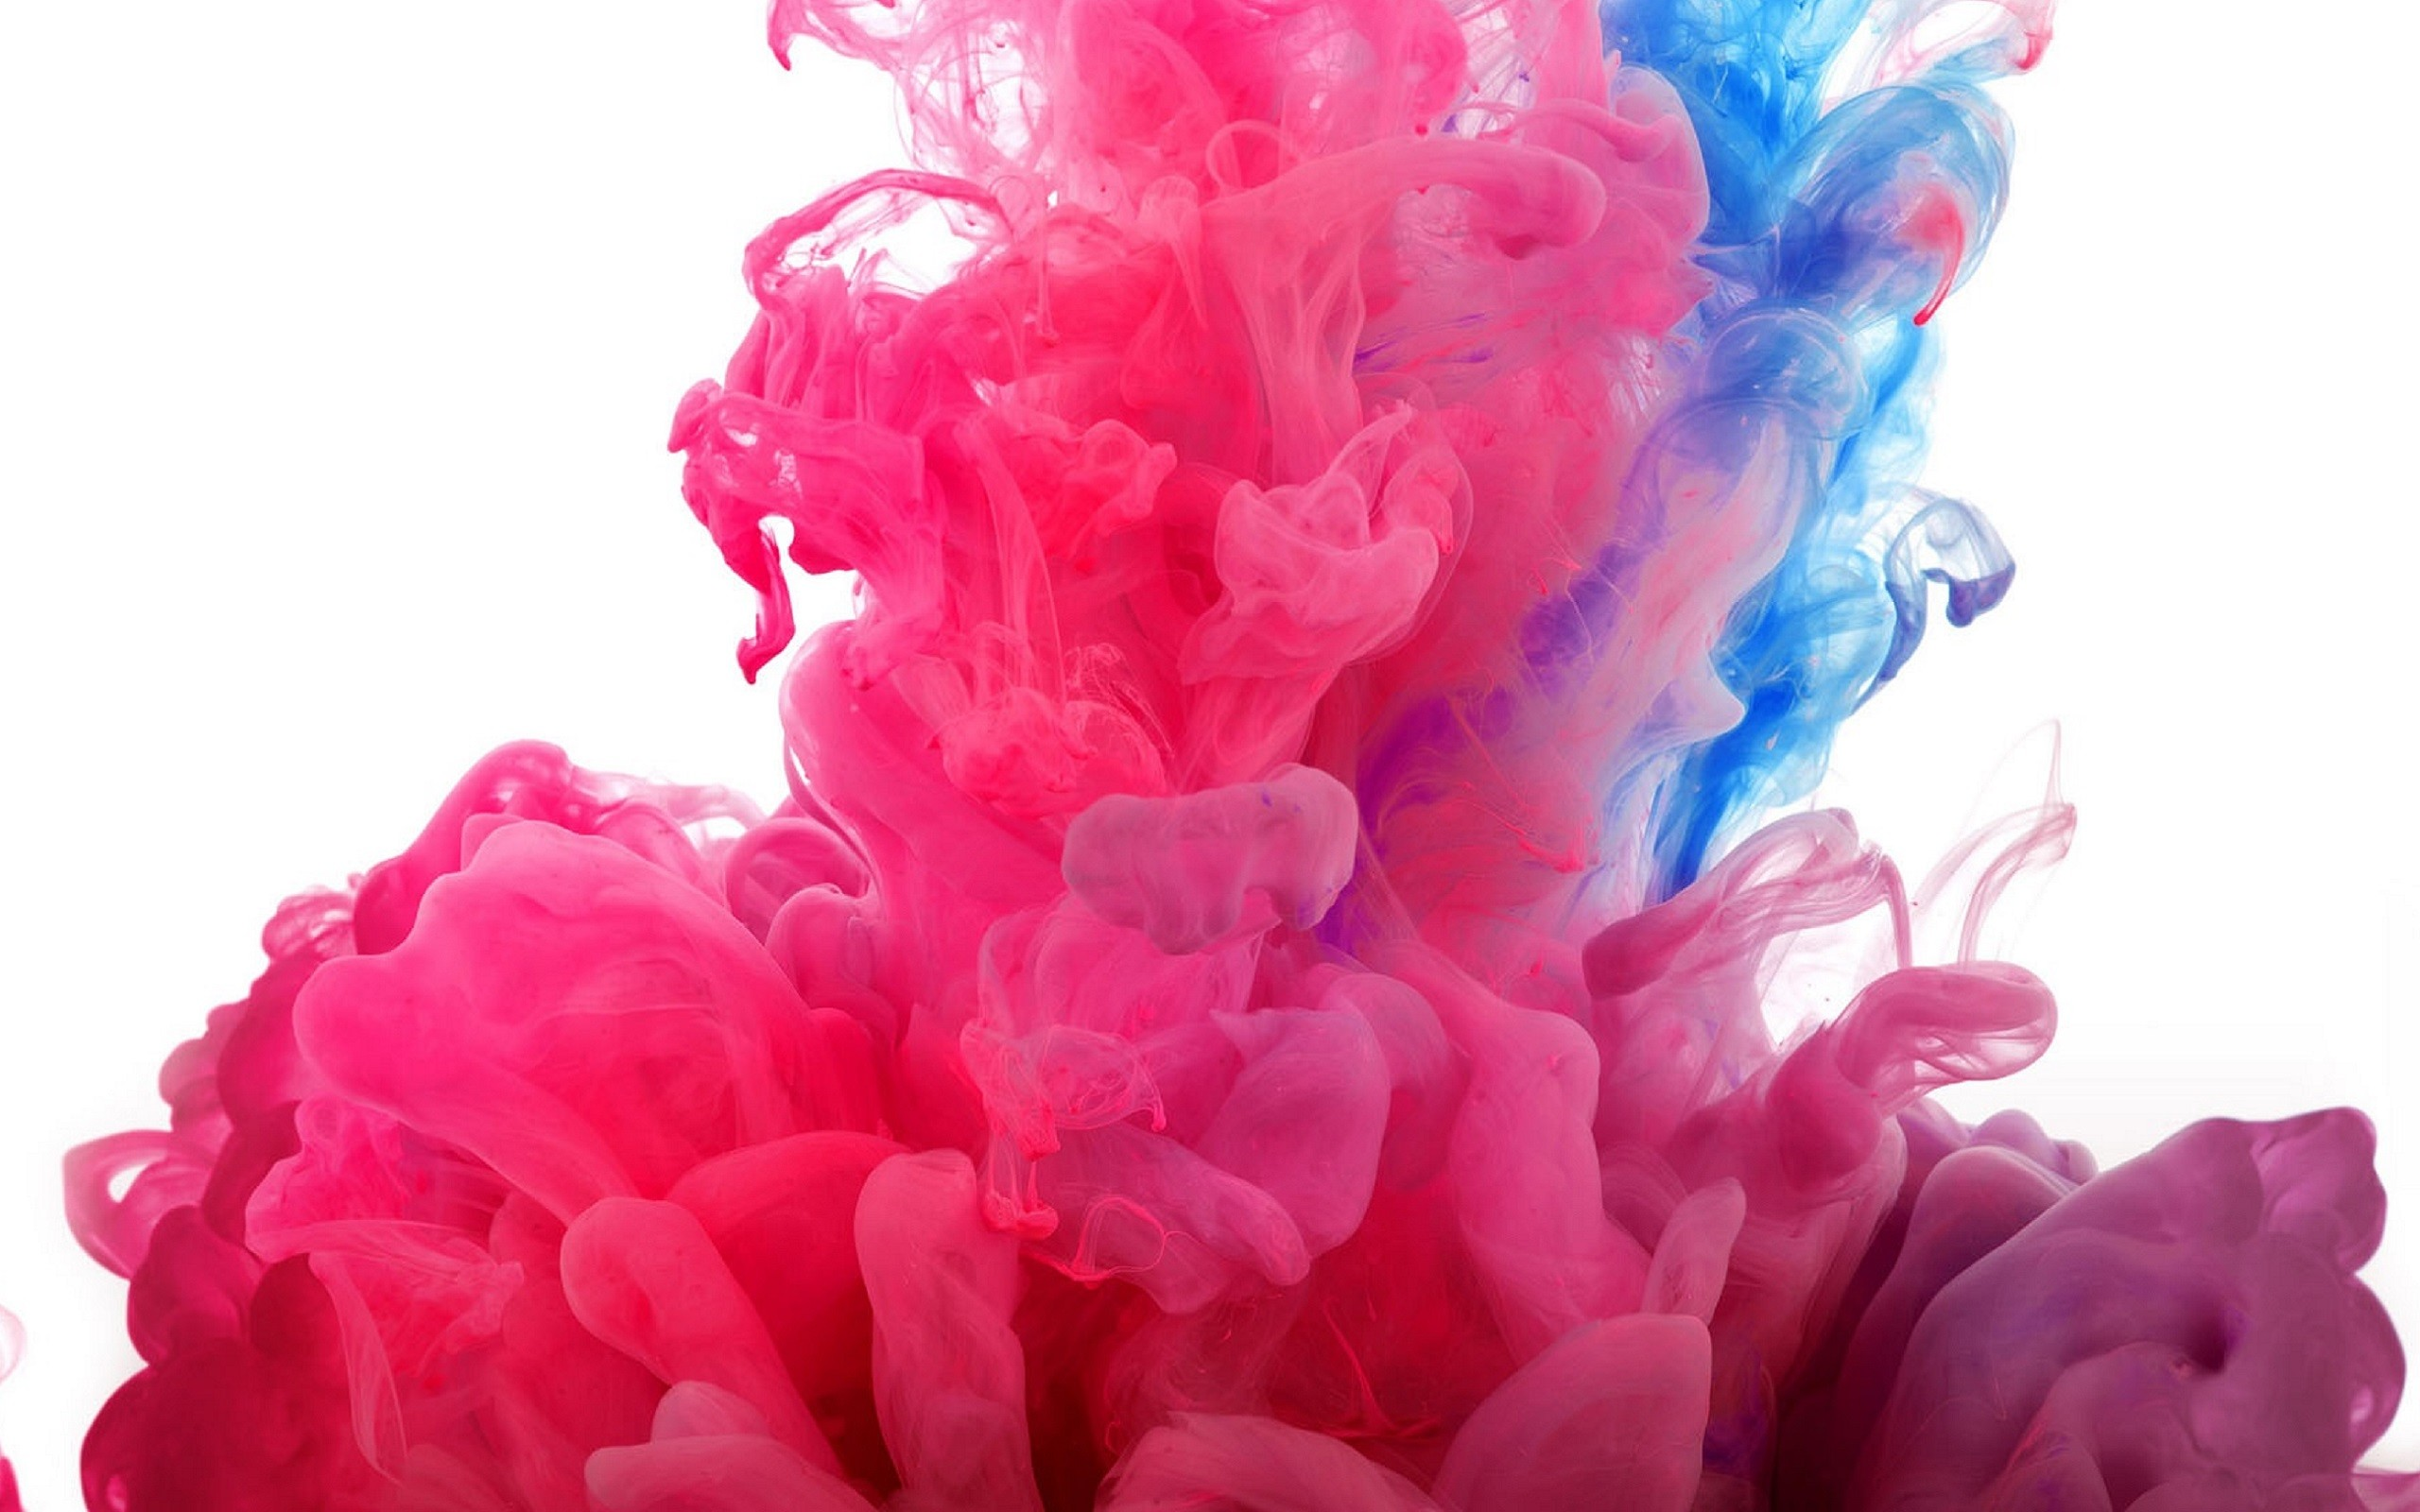 2560x1600 Pink and Blue Smoke Wallpaper Background 61851